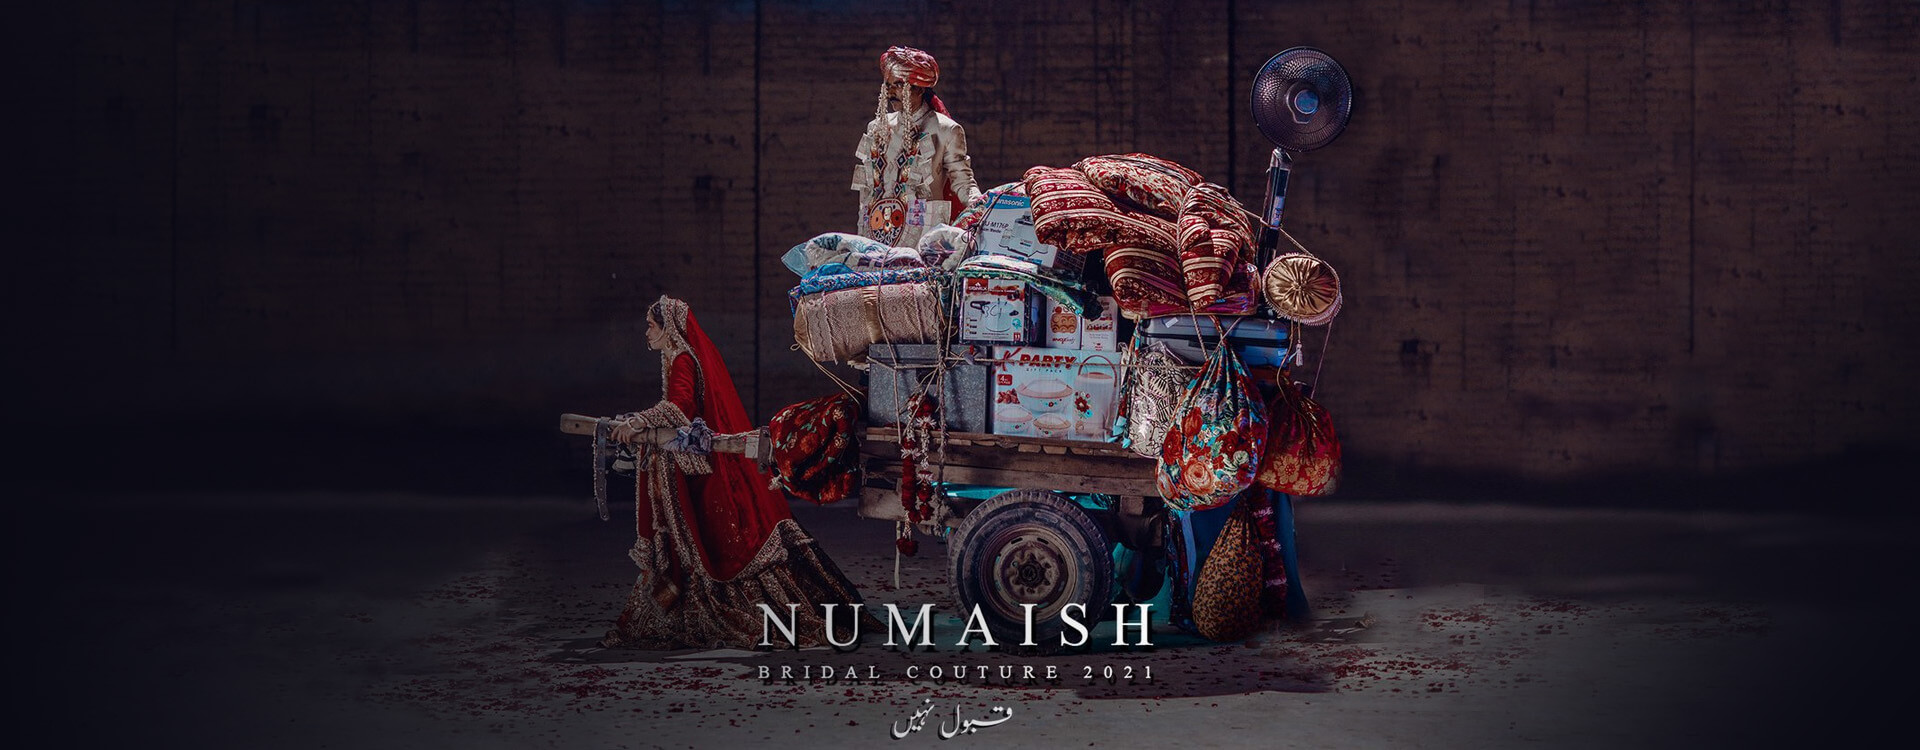 Ali Xeeshan's 'Numaish' Receives little Praise & Much Criticism